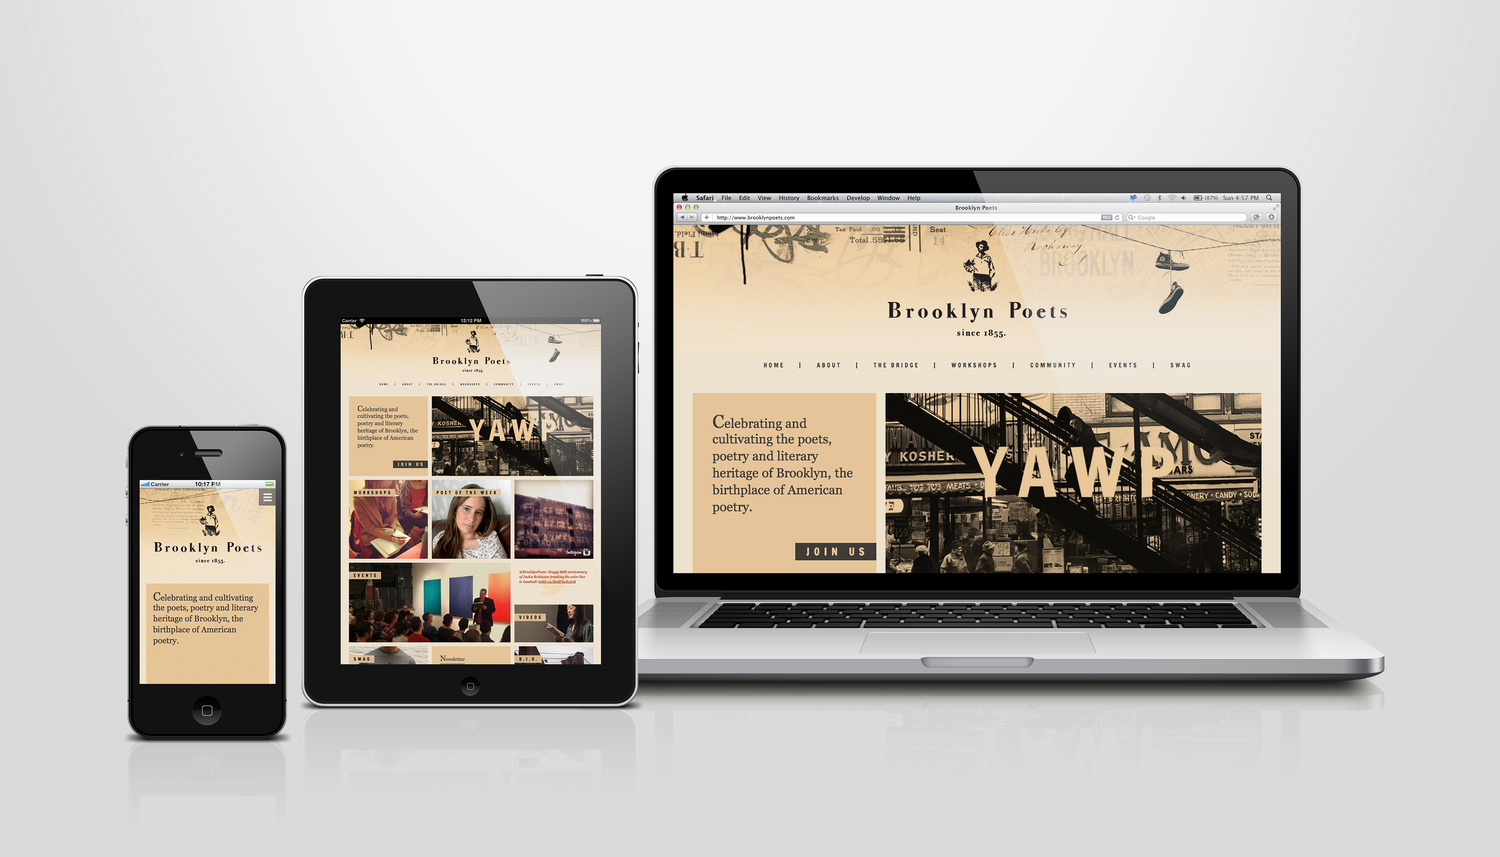 Edgy Responsive Website Design for Brooklyn Poets